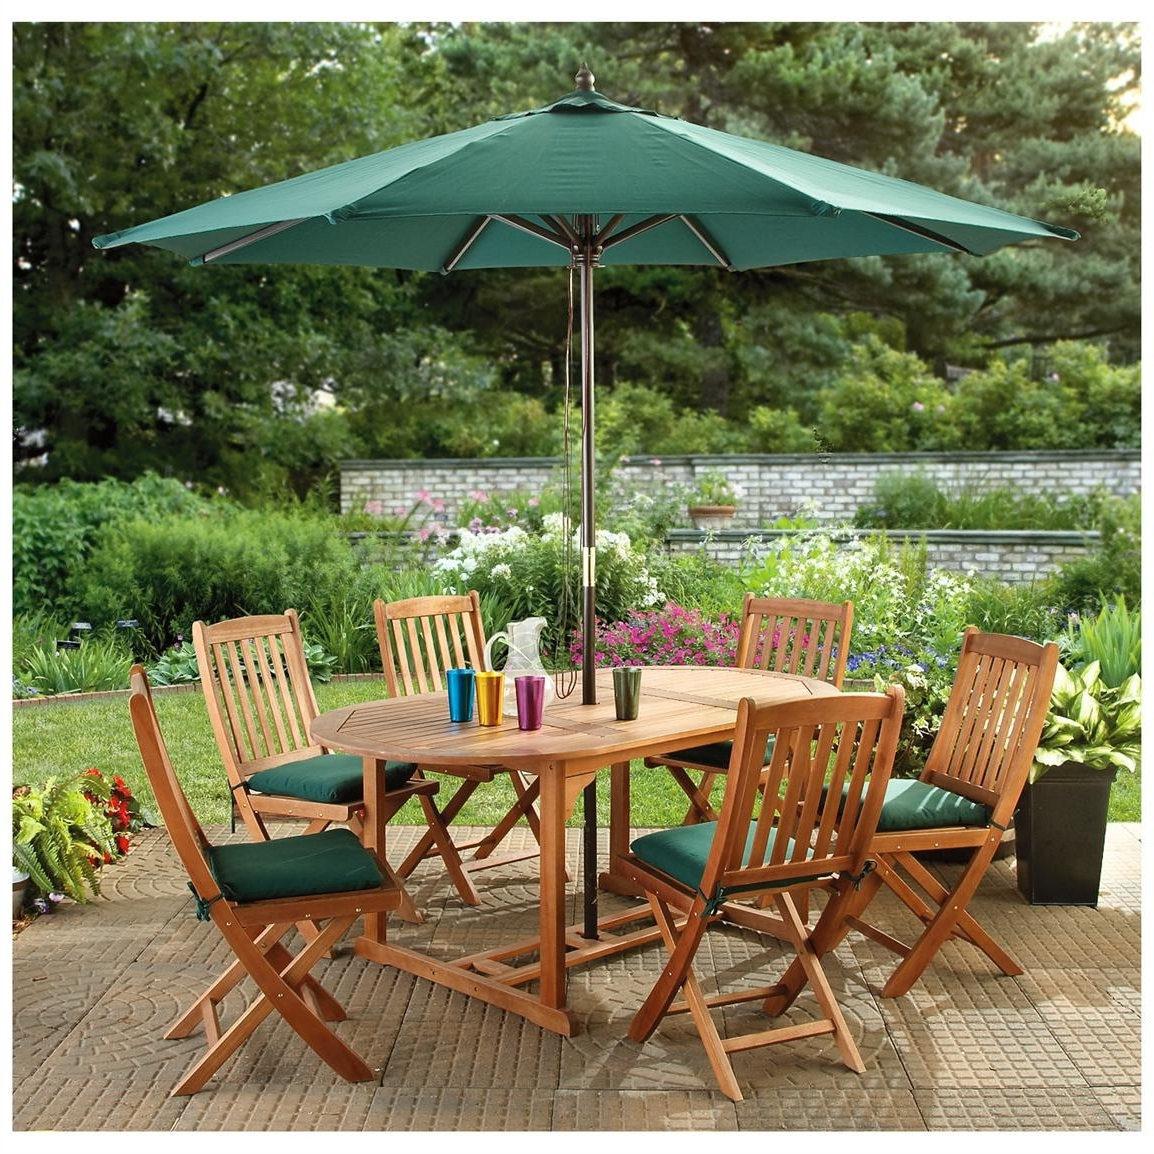 Current Patio Conversation Sets With Umbrella In Patio Furniture With Umbrella Ideas : Sathoud Decors – Decorating (View 3 of 15)